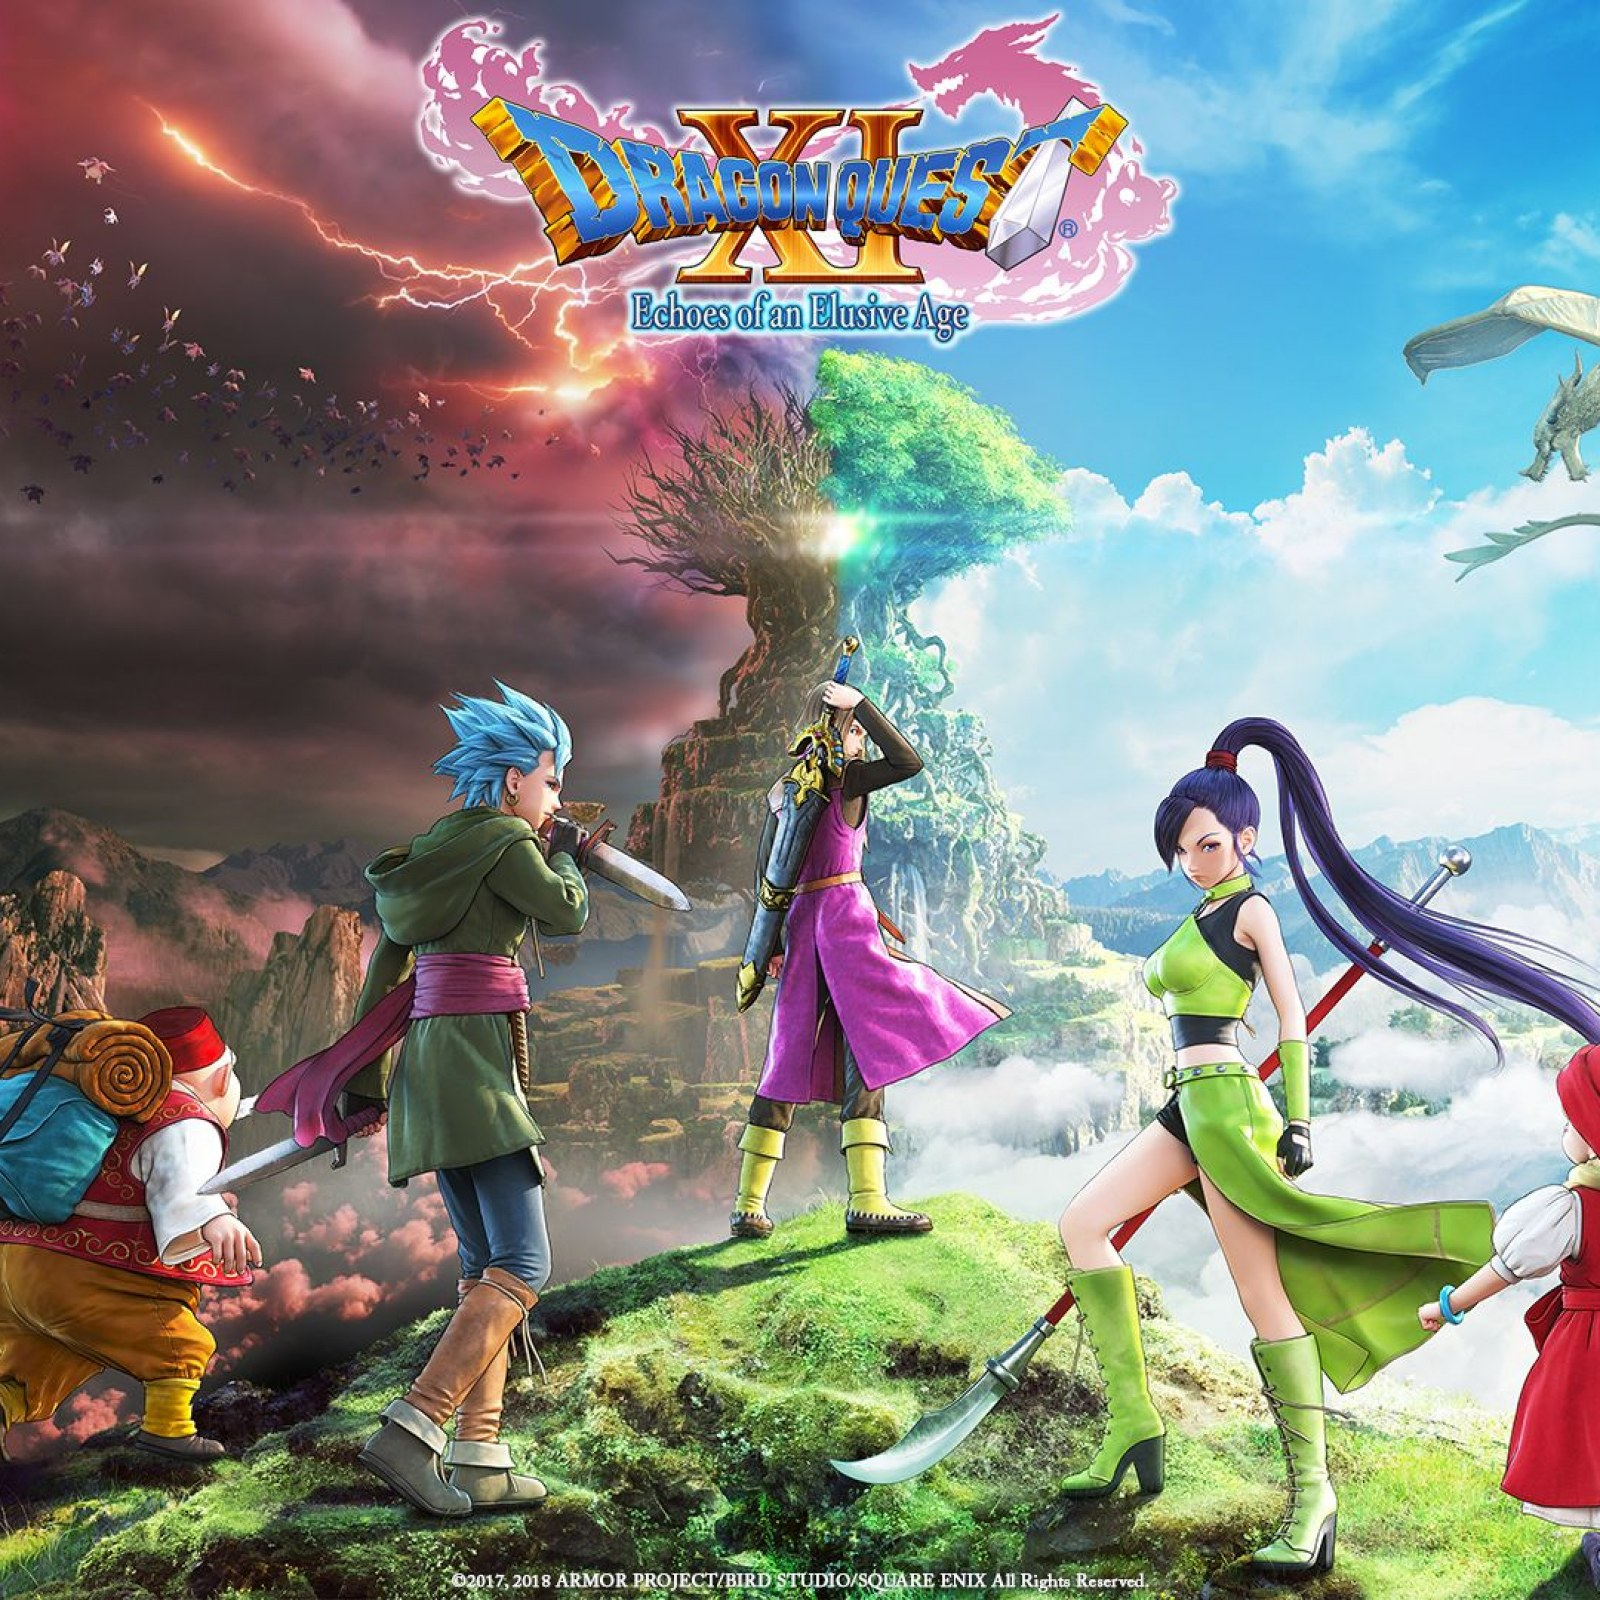 Dragon Quest XI' Post-game Guide: How to Strengthen Your Party For